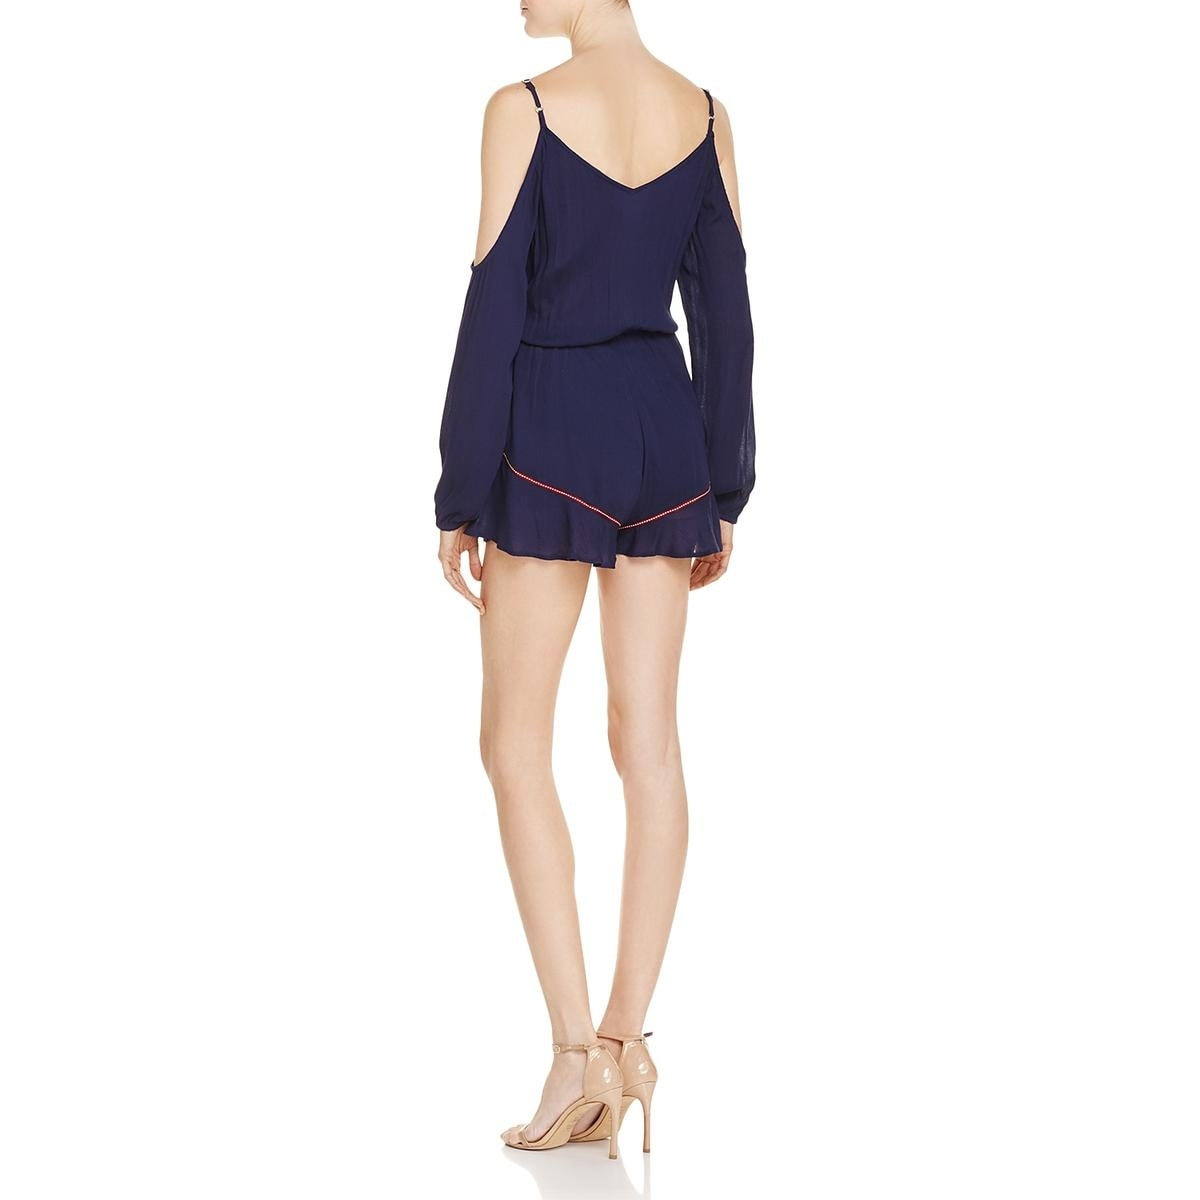 8ac23b5c296c Shop Band of Gypsies Womens Romper Embroidered V-Neck - On Sale - Free  Shipping On Orders Over  45 - Overstock - 22485556